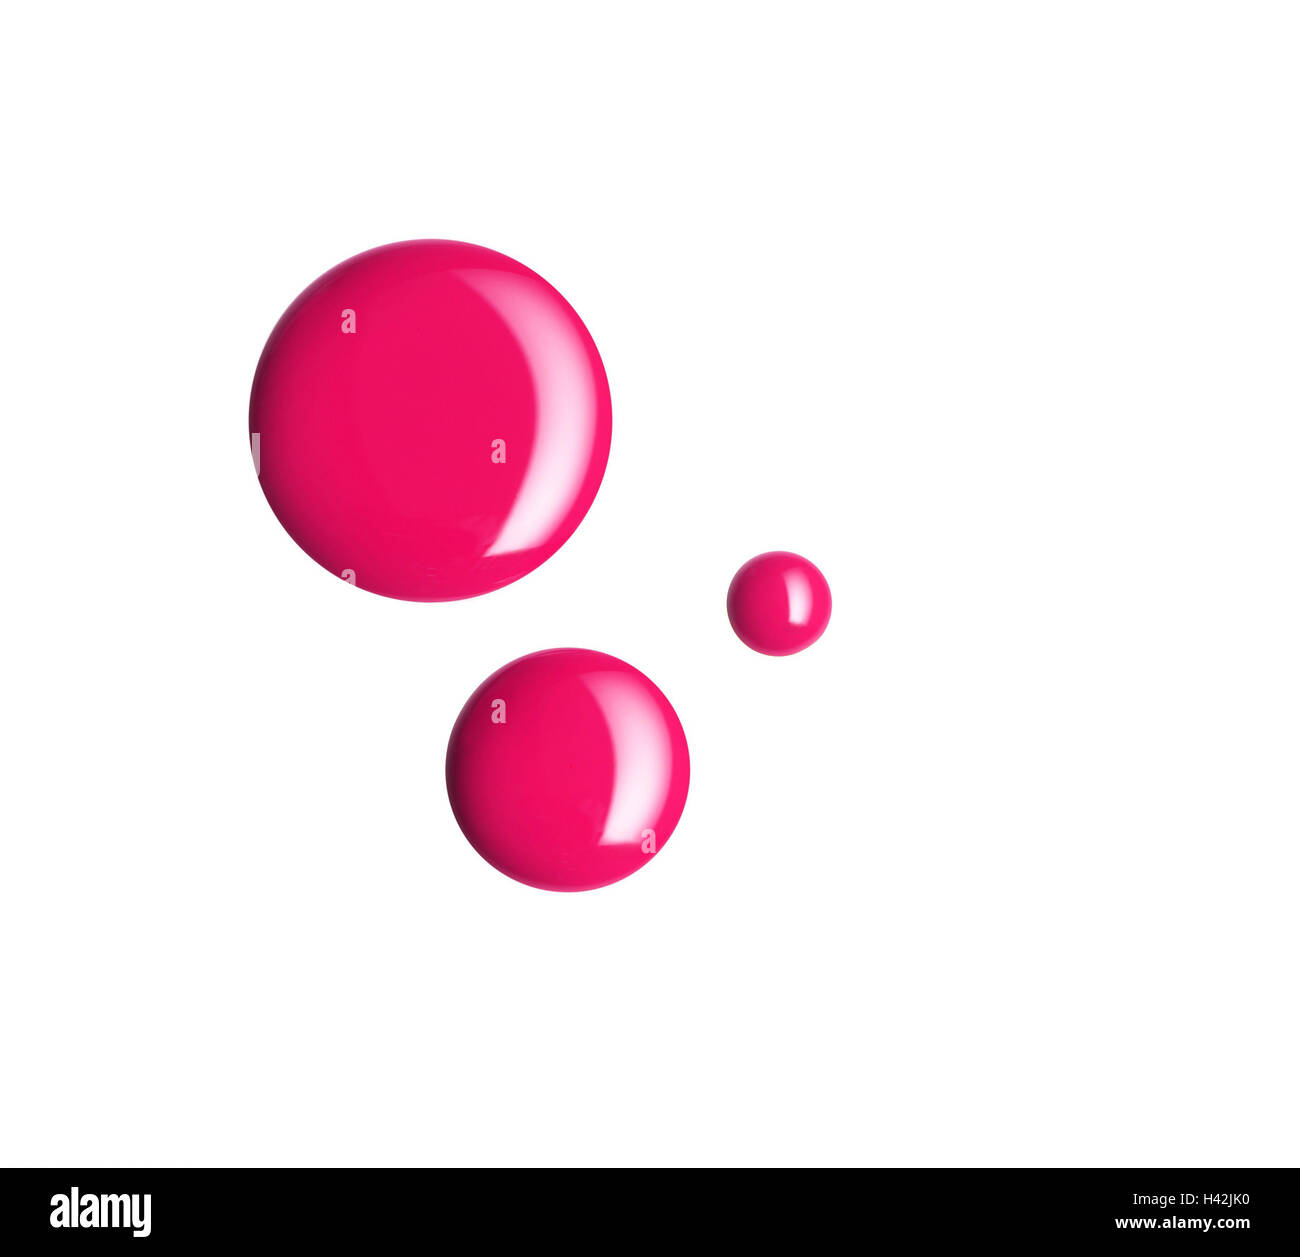 Drop, nail varnish, red, cosmetics, beauty, colour, Beauty, blotch, blot, blots, fluidly, thickly, liquid, radiant, - Stock Image